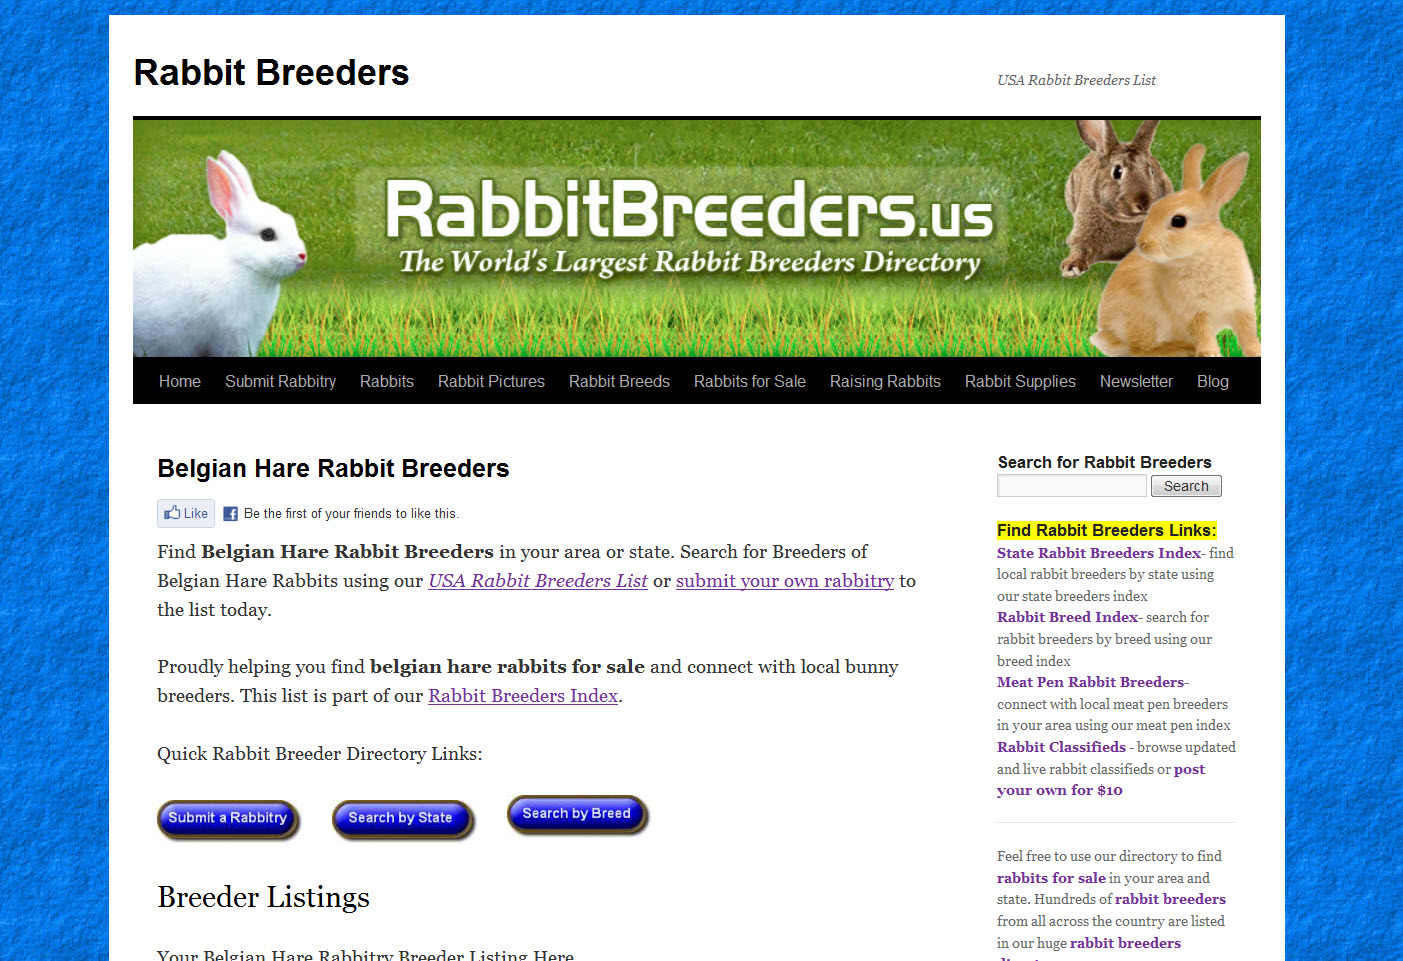 Belgian Hare Rabbit Breeders